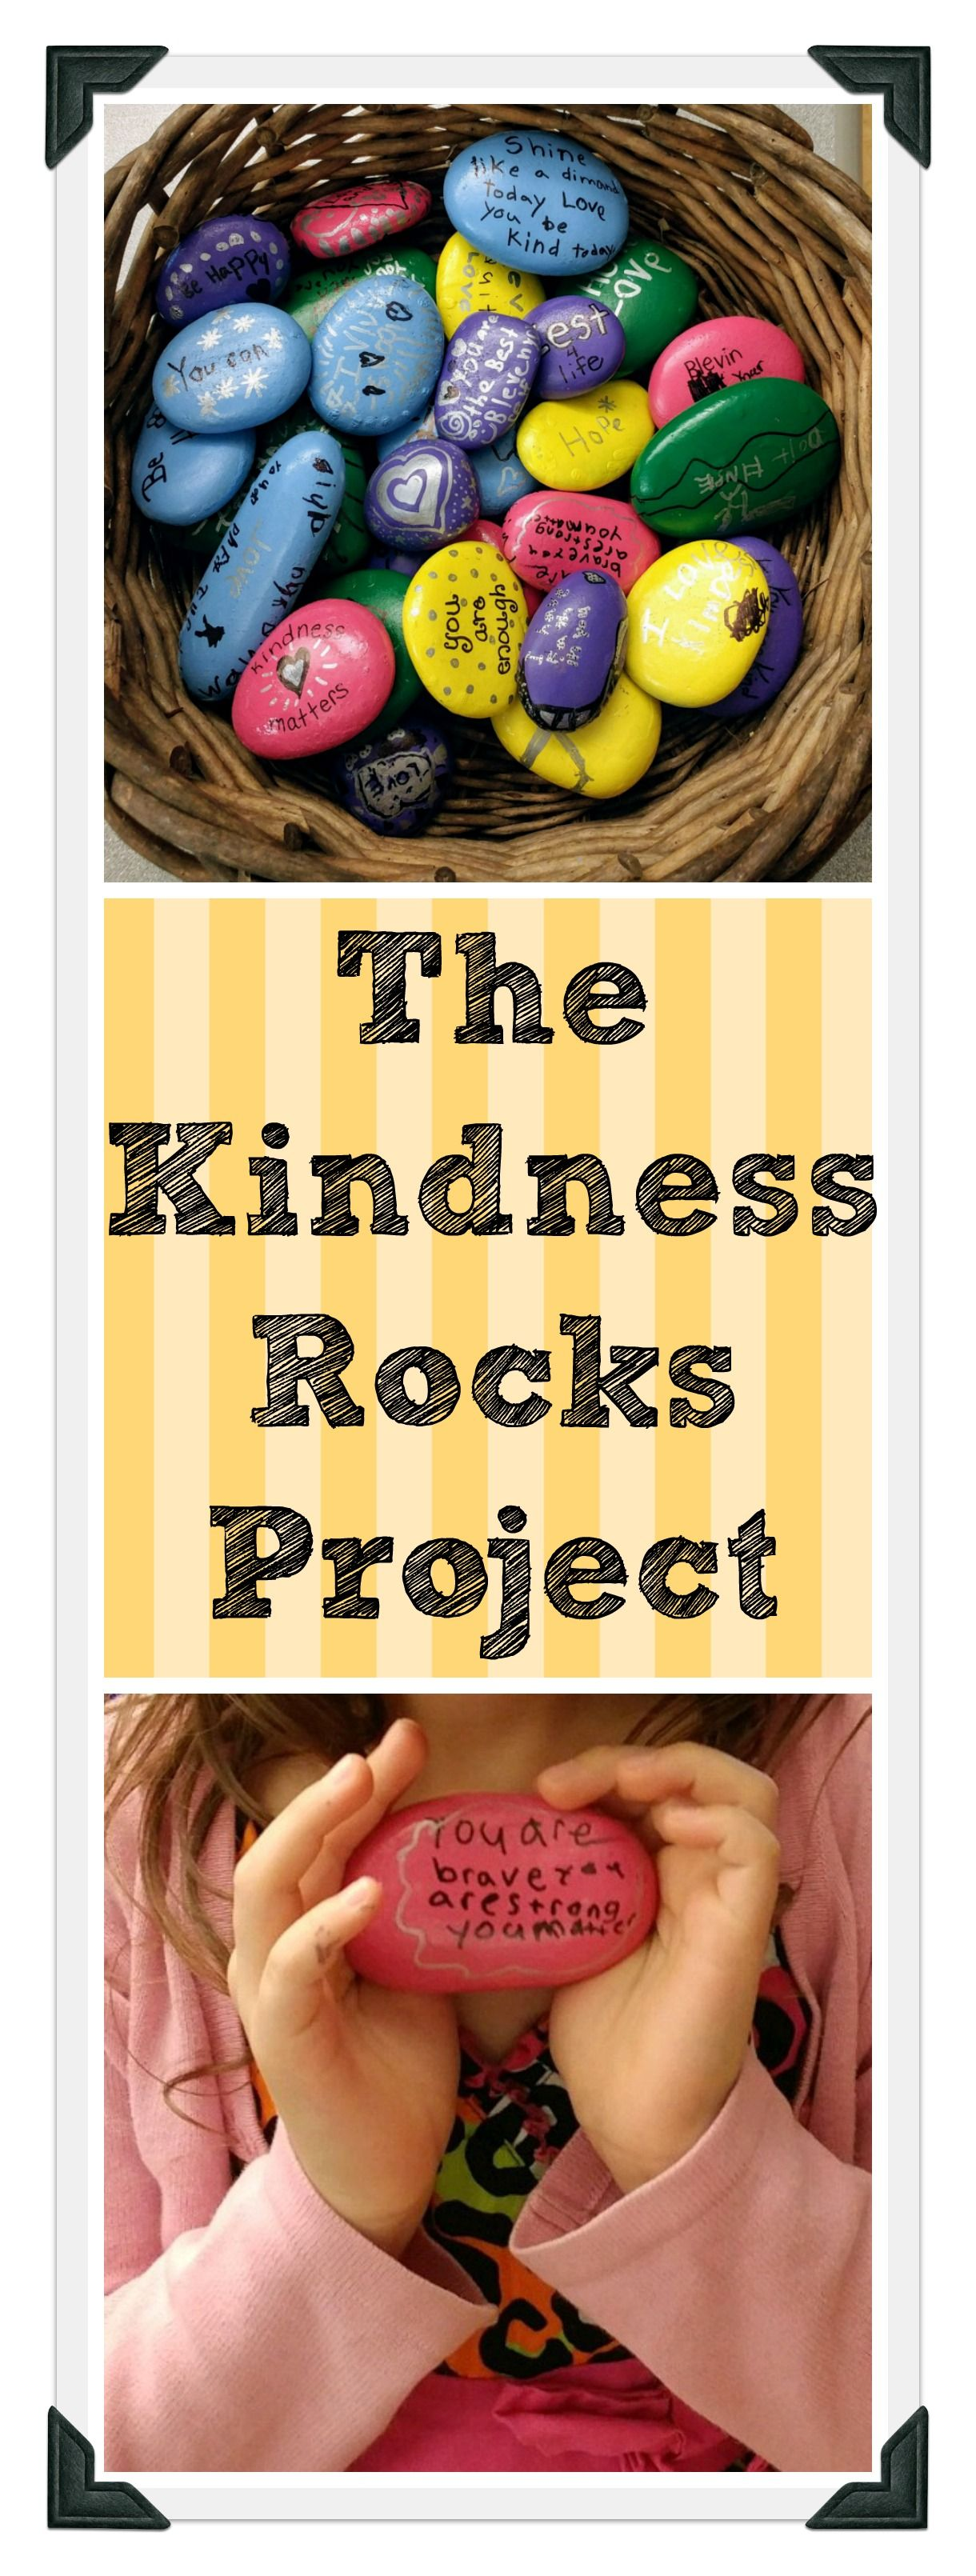 Find Out How One School Implemented Kindness Rocks To Spread Kindness And Positivity